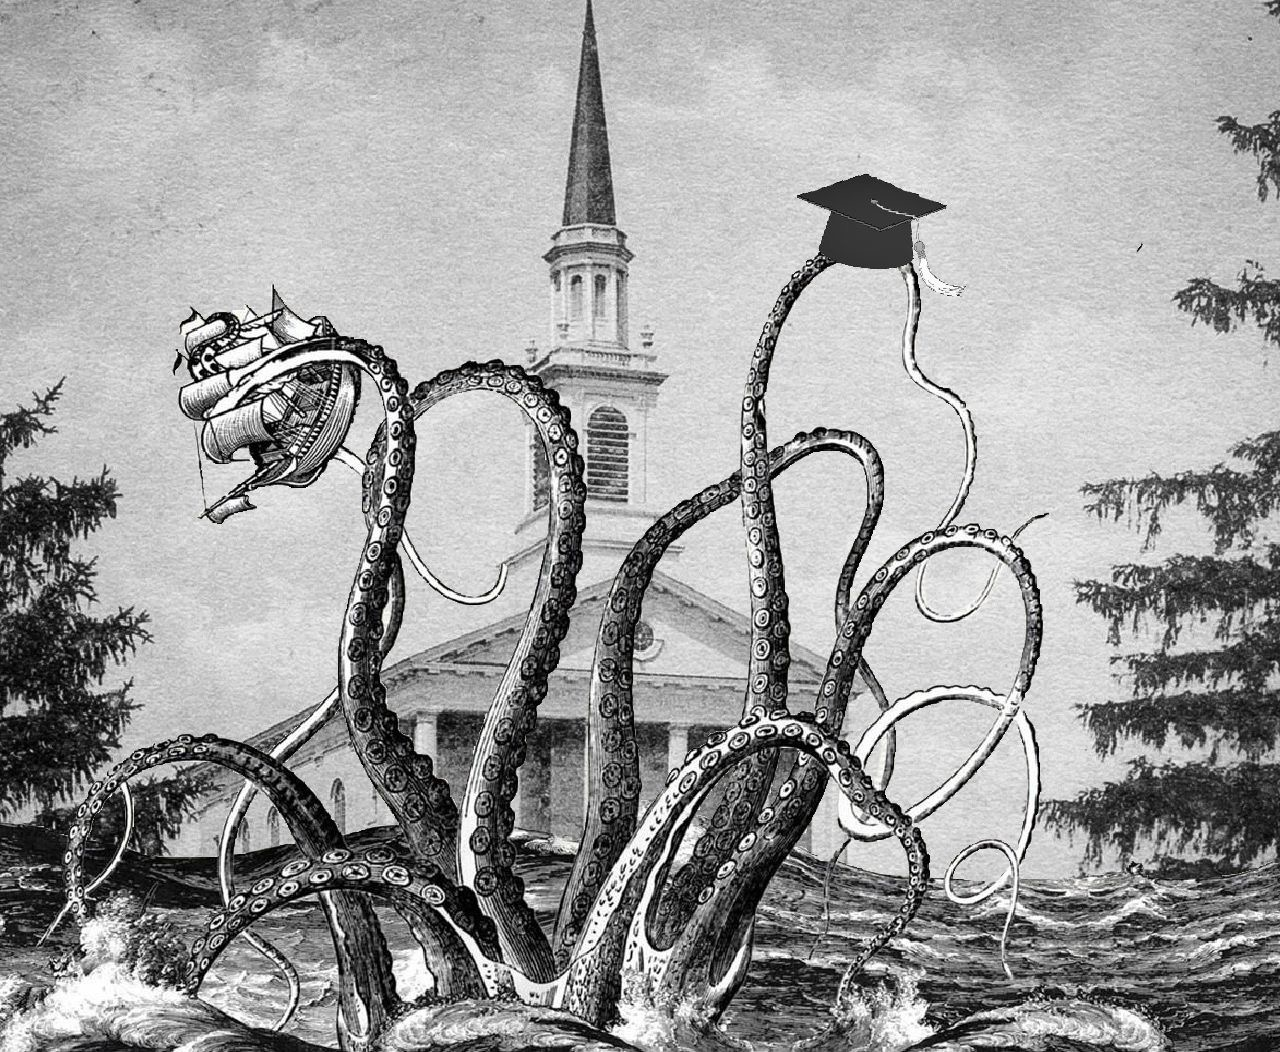 Op-Ed: Middlebury Must Rescind The Kraken's Honorary Degree